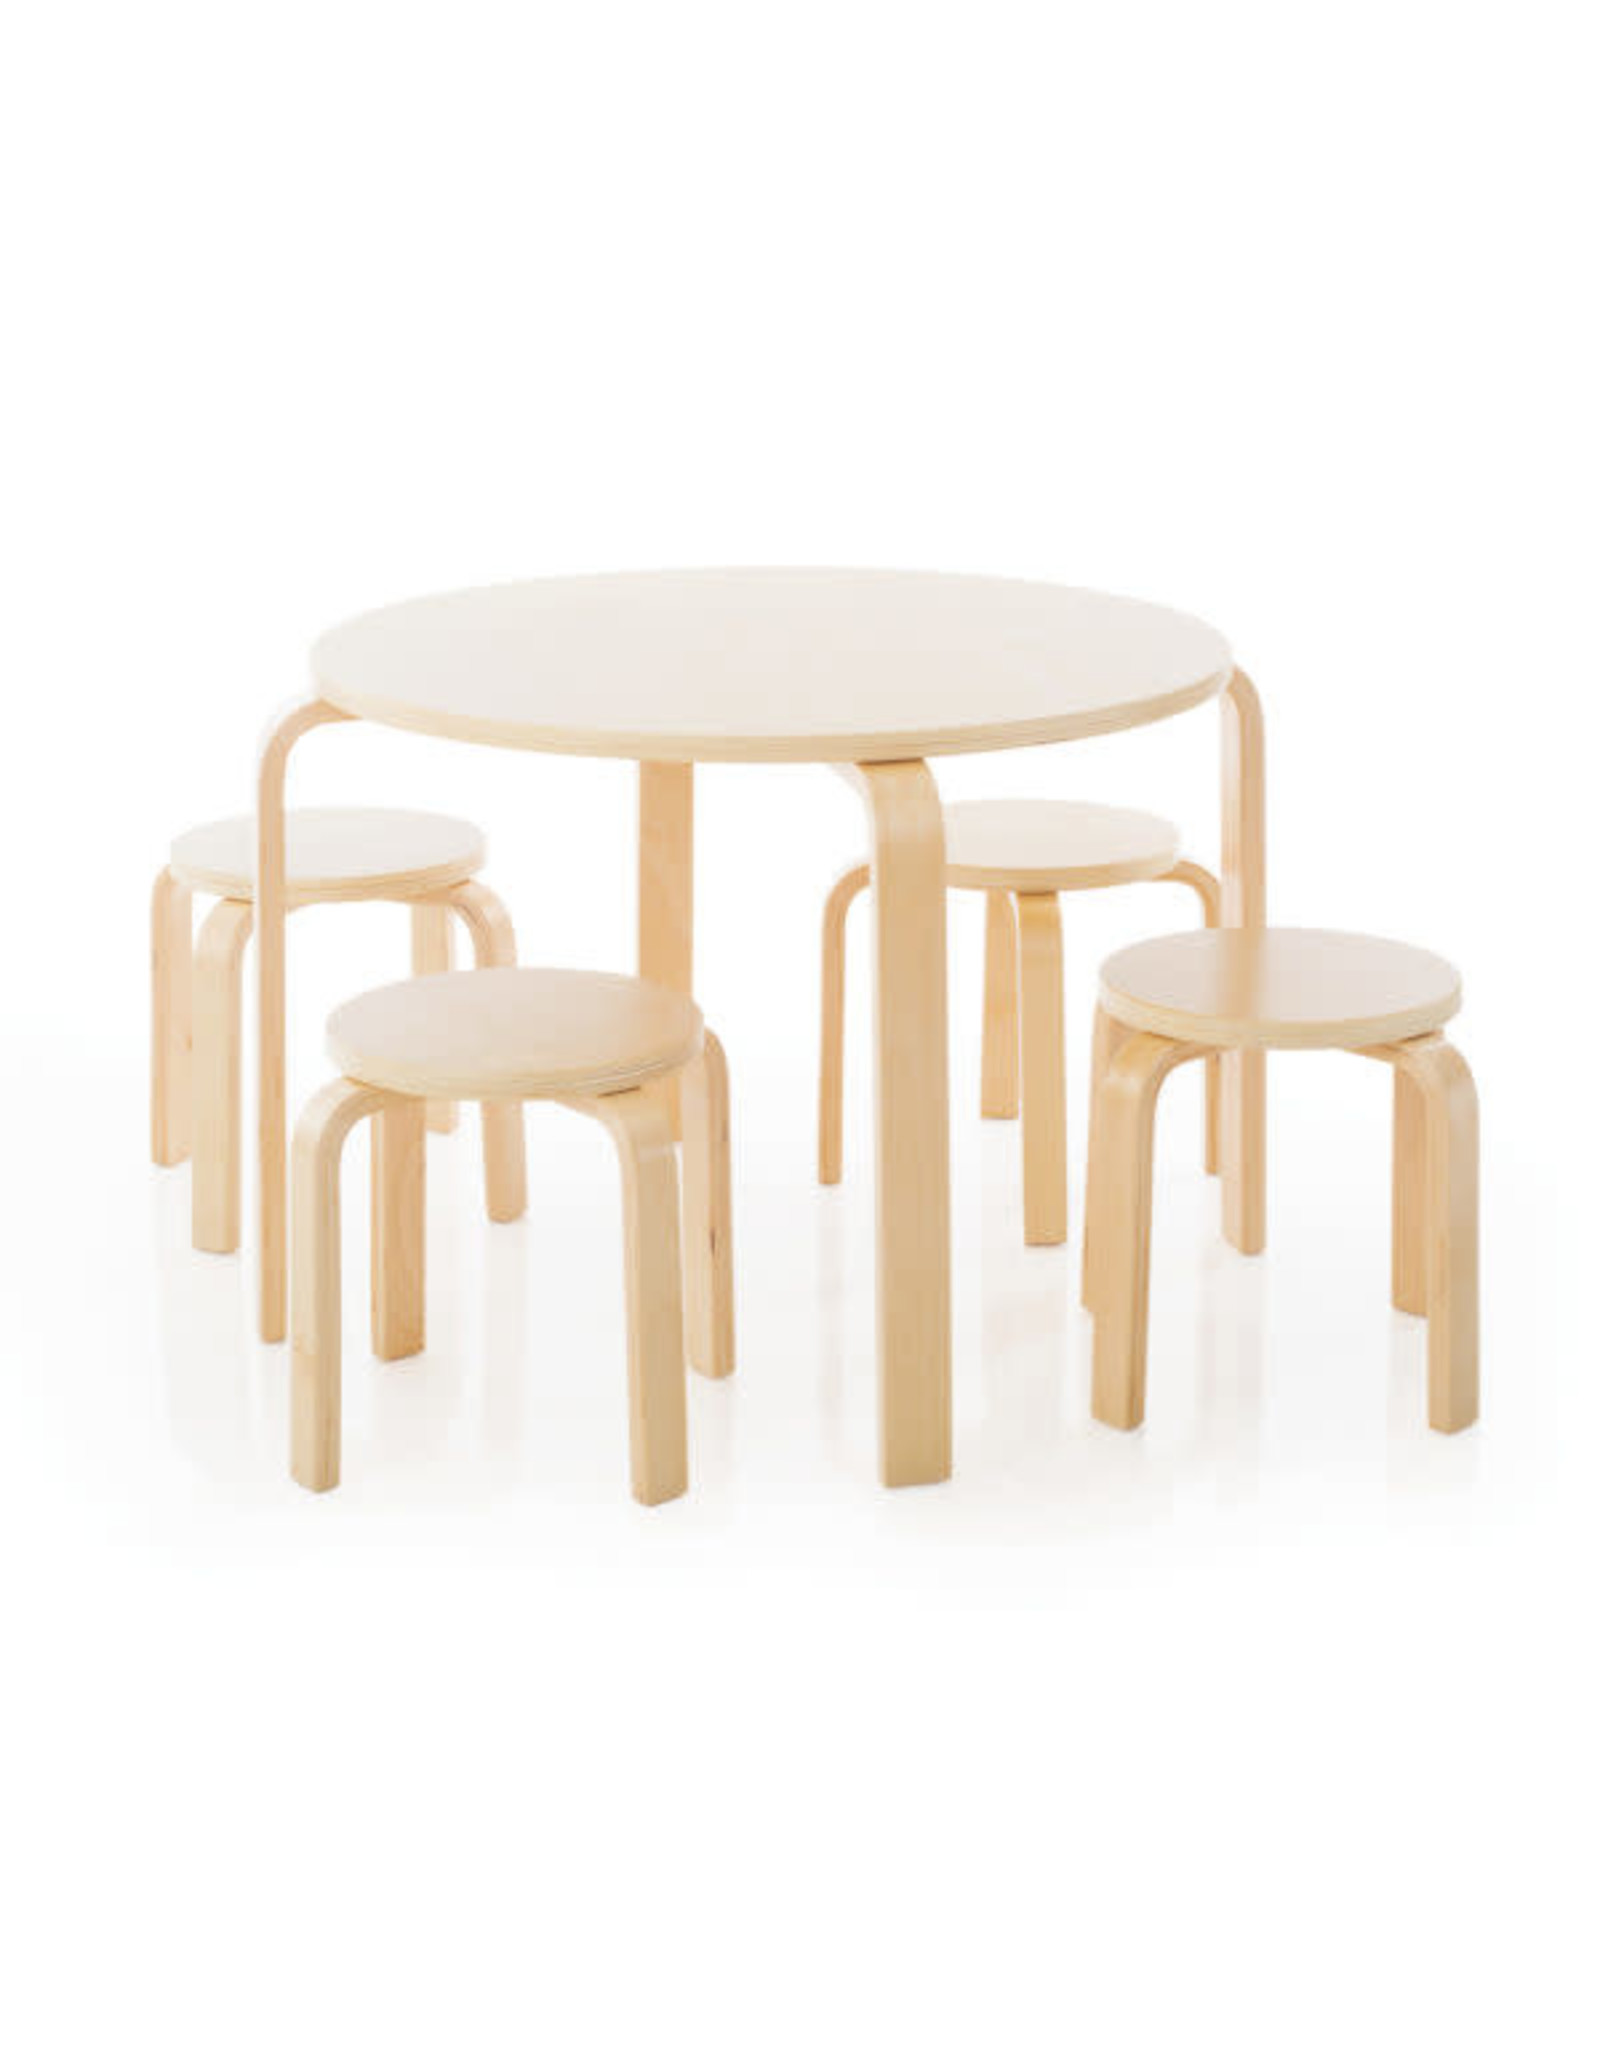 Guidecraft Nordic Table Set natural